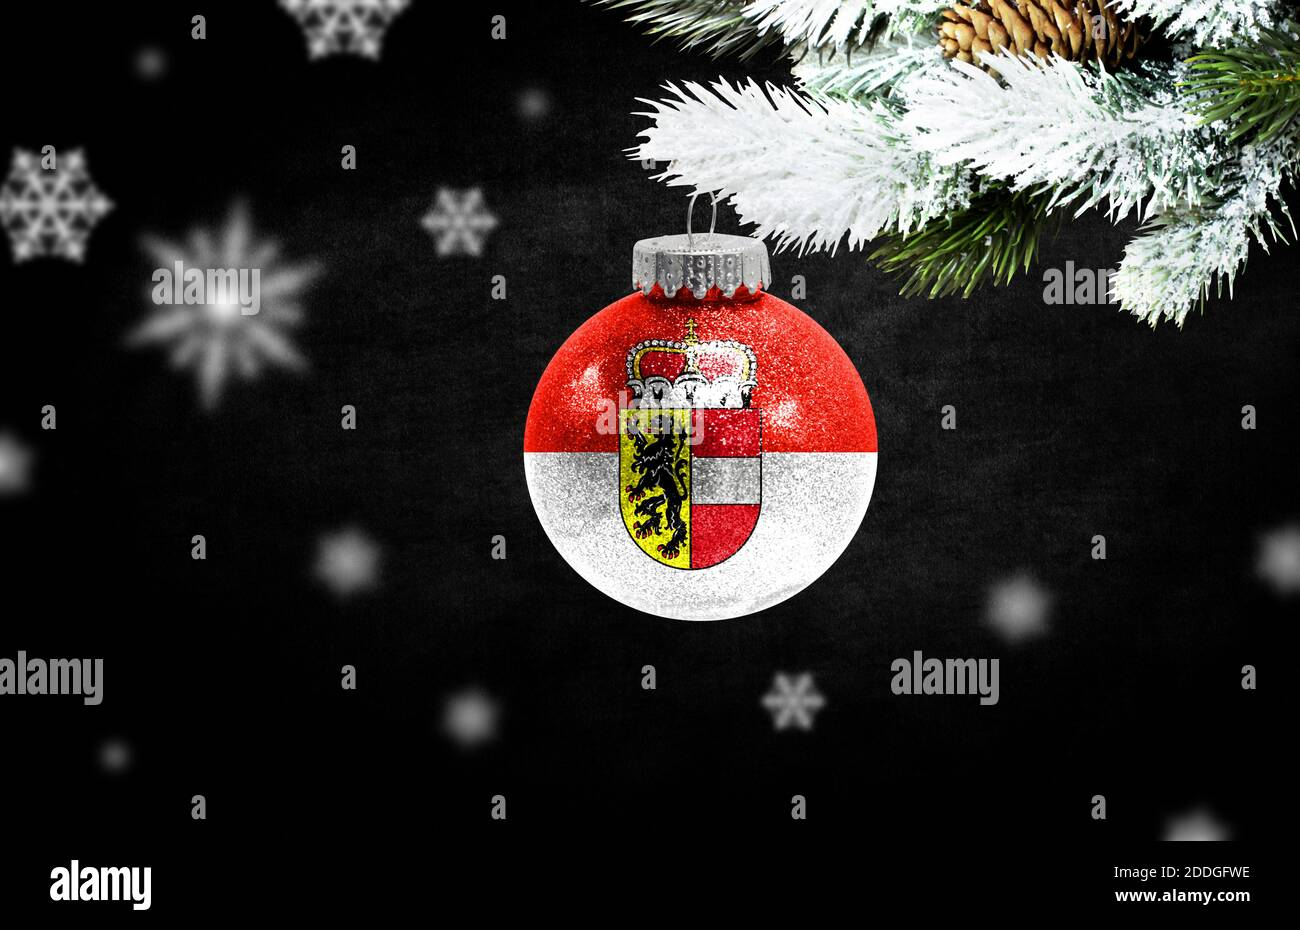 Salzburg Christmas Decorations High Resolution Stock Photography And Images Alamy